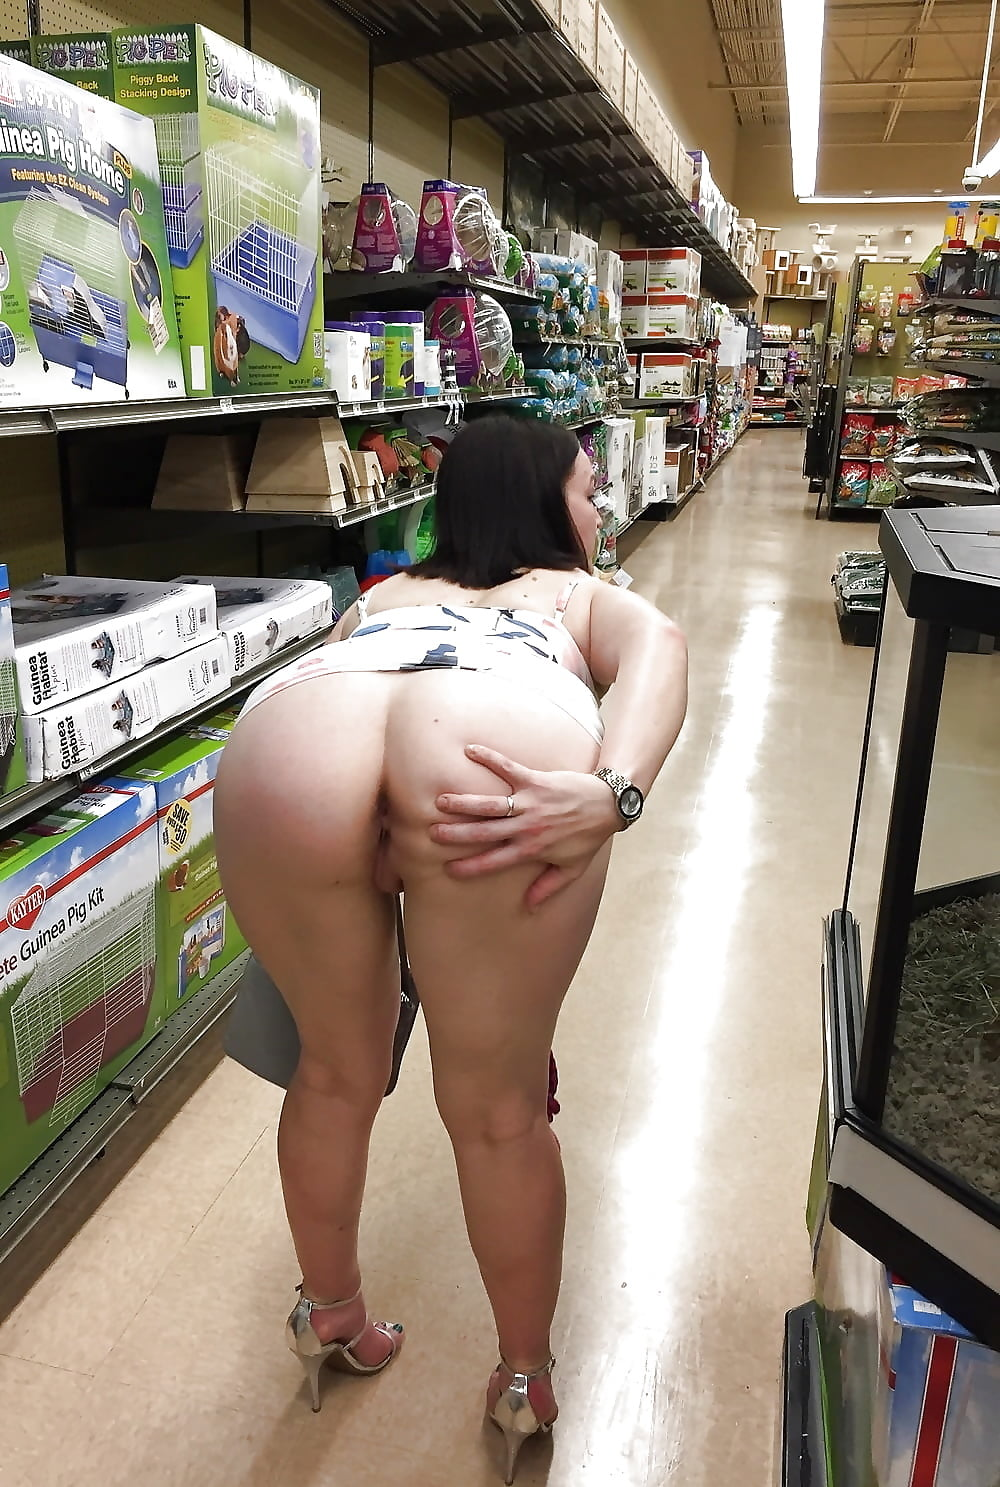 butt-flash-pics-nude-girl-games